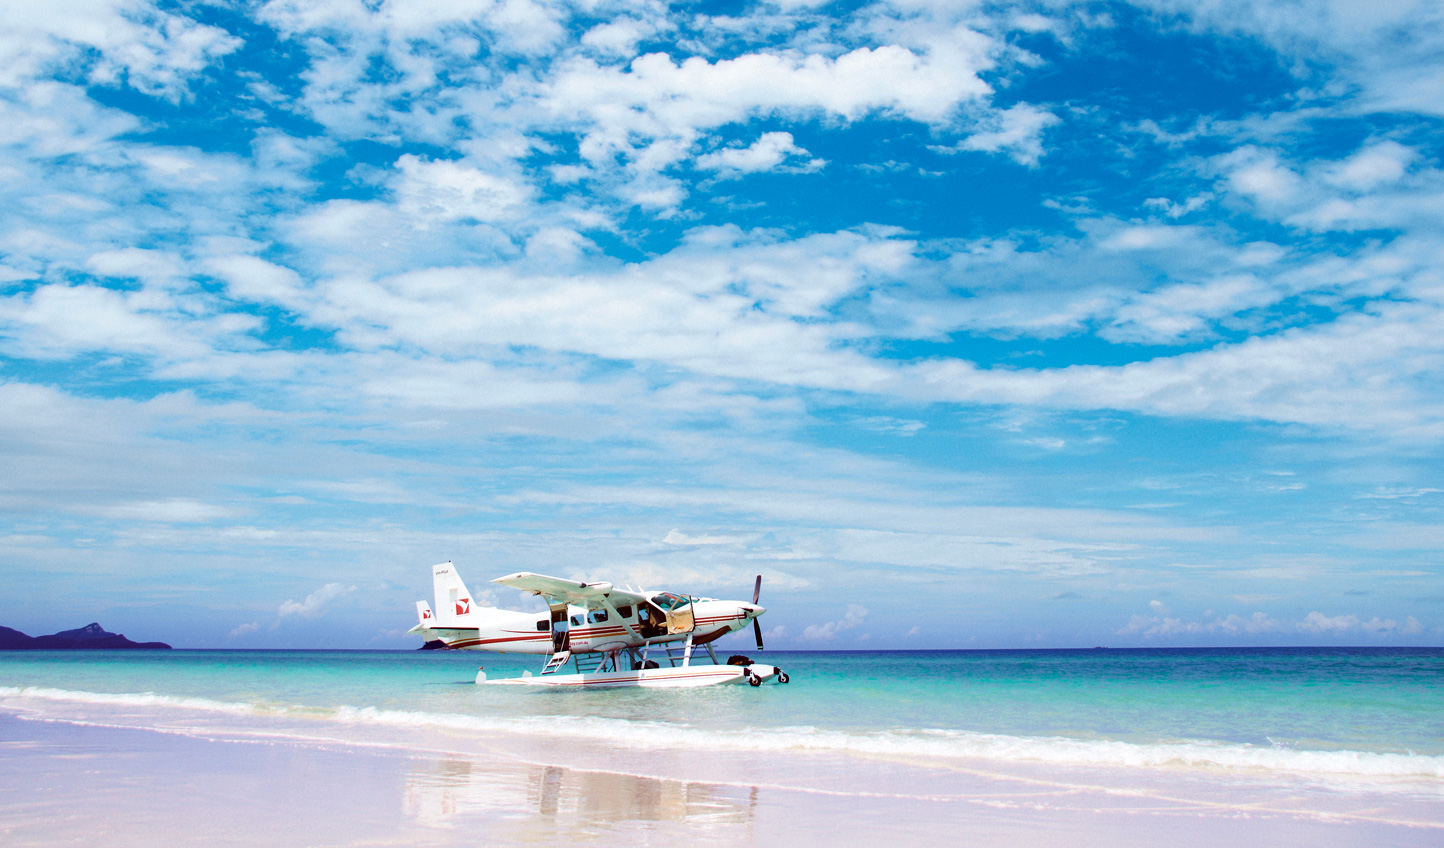 Escape to the crystalline waters of the Whitsundays for an afternoon